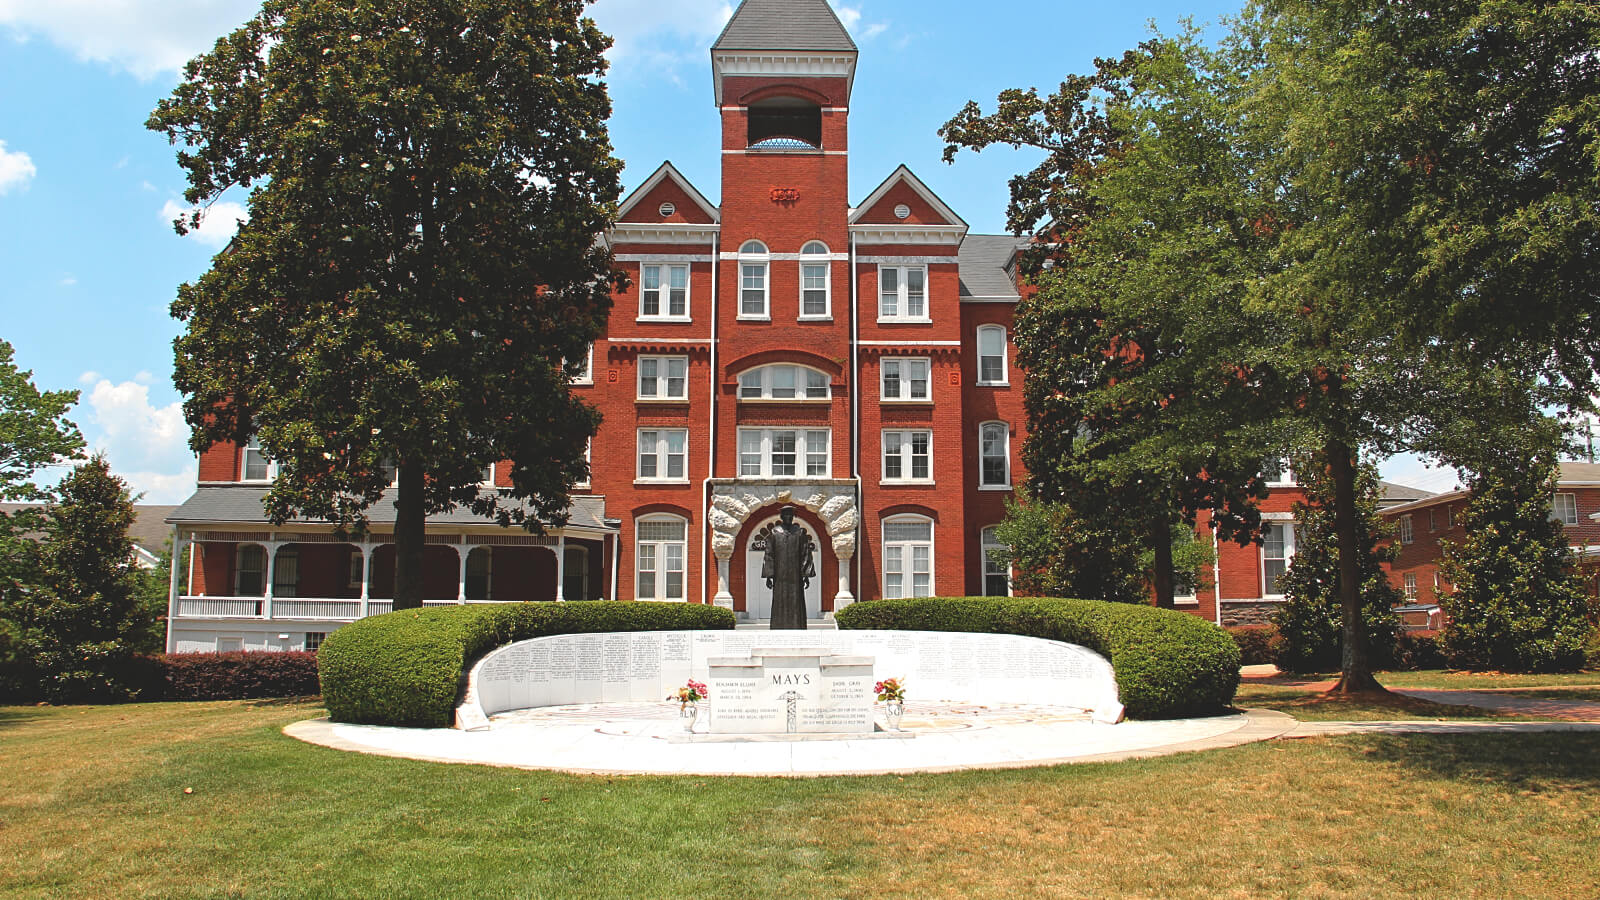 An image of a red building on the Morehouse College campus.